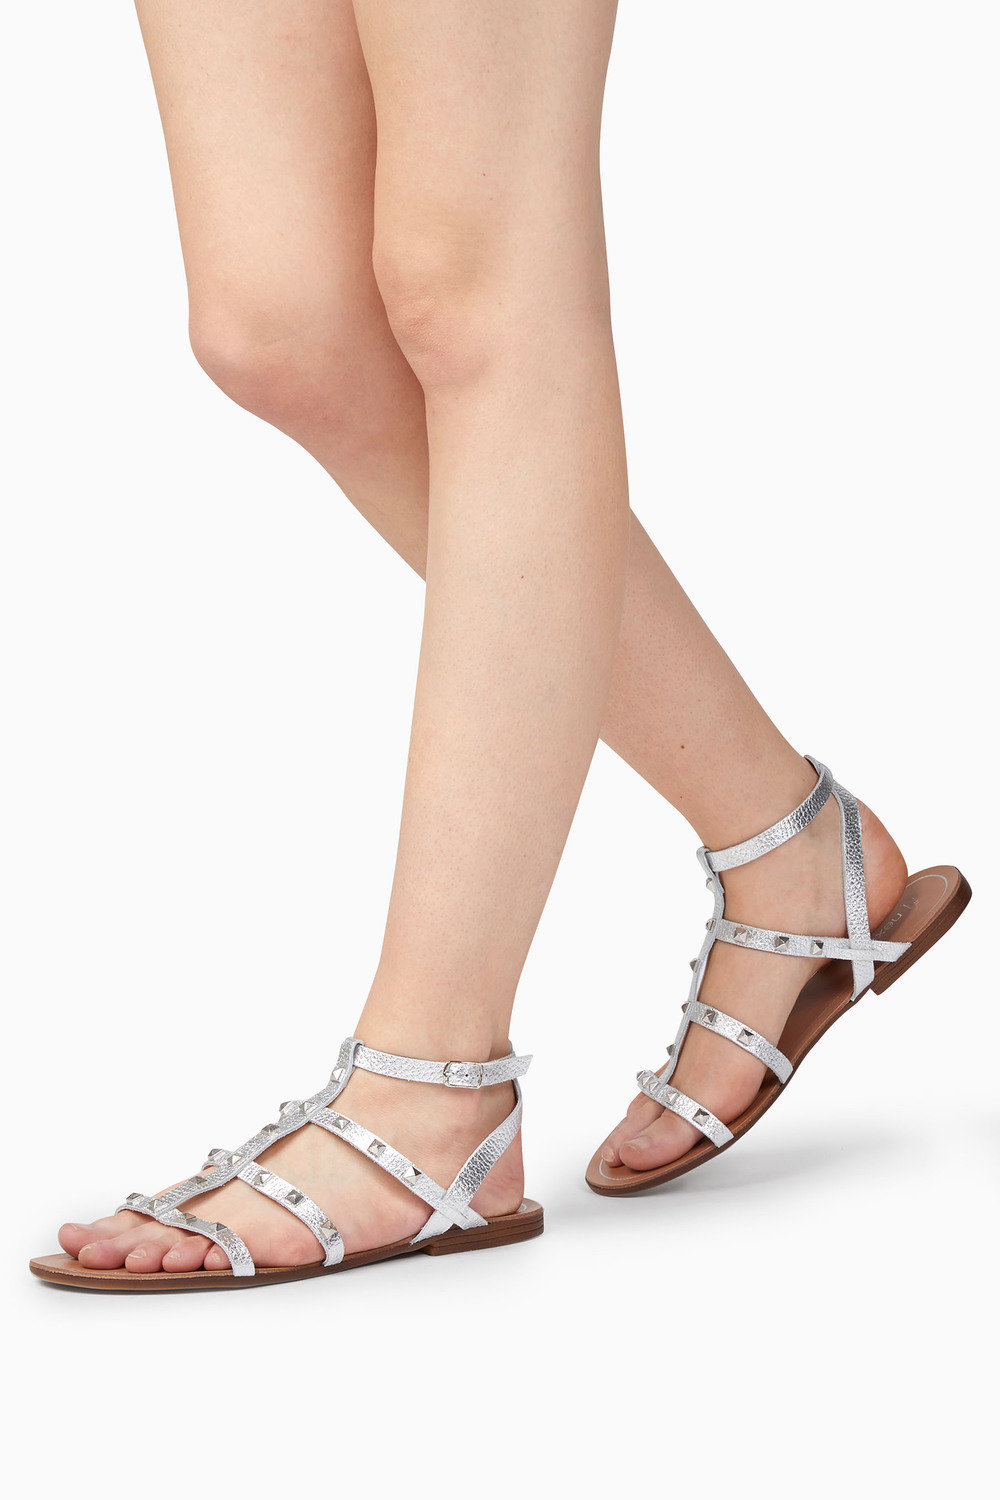 221b56e939c8 Next Gladiator Stud Sandals Online